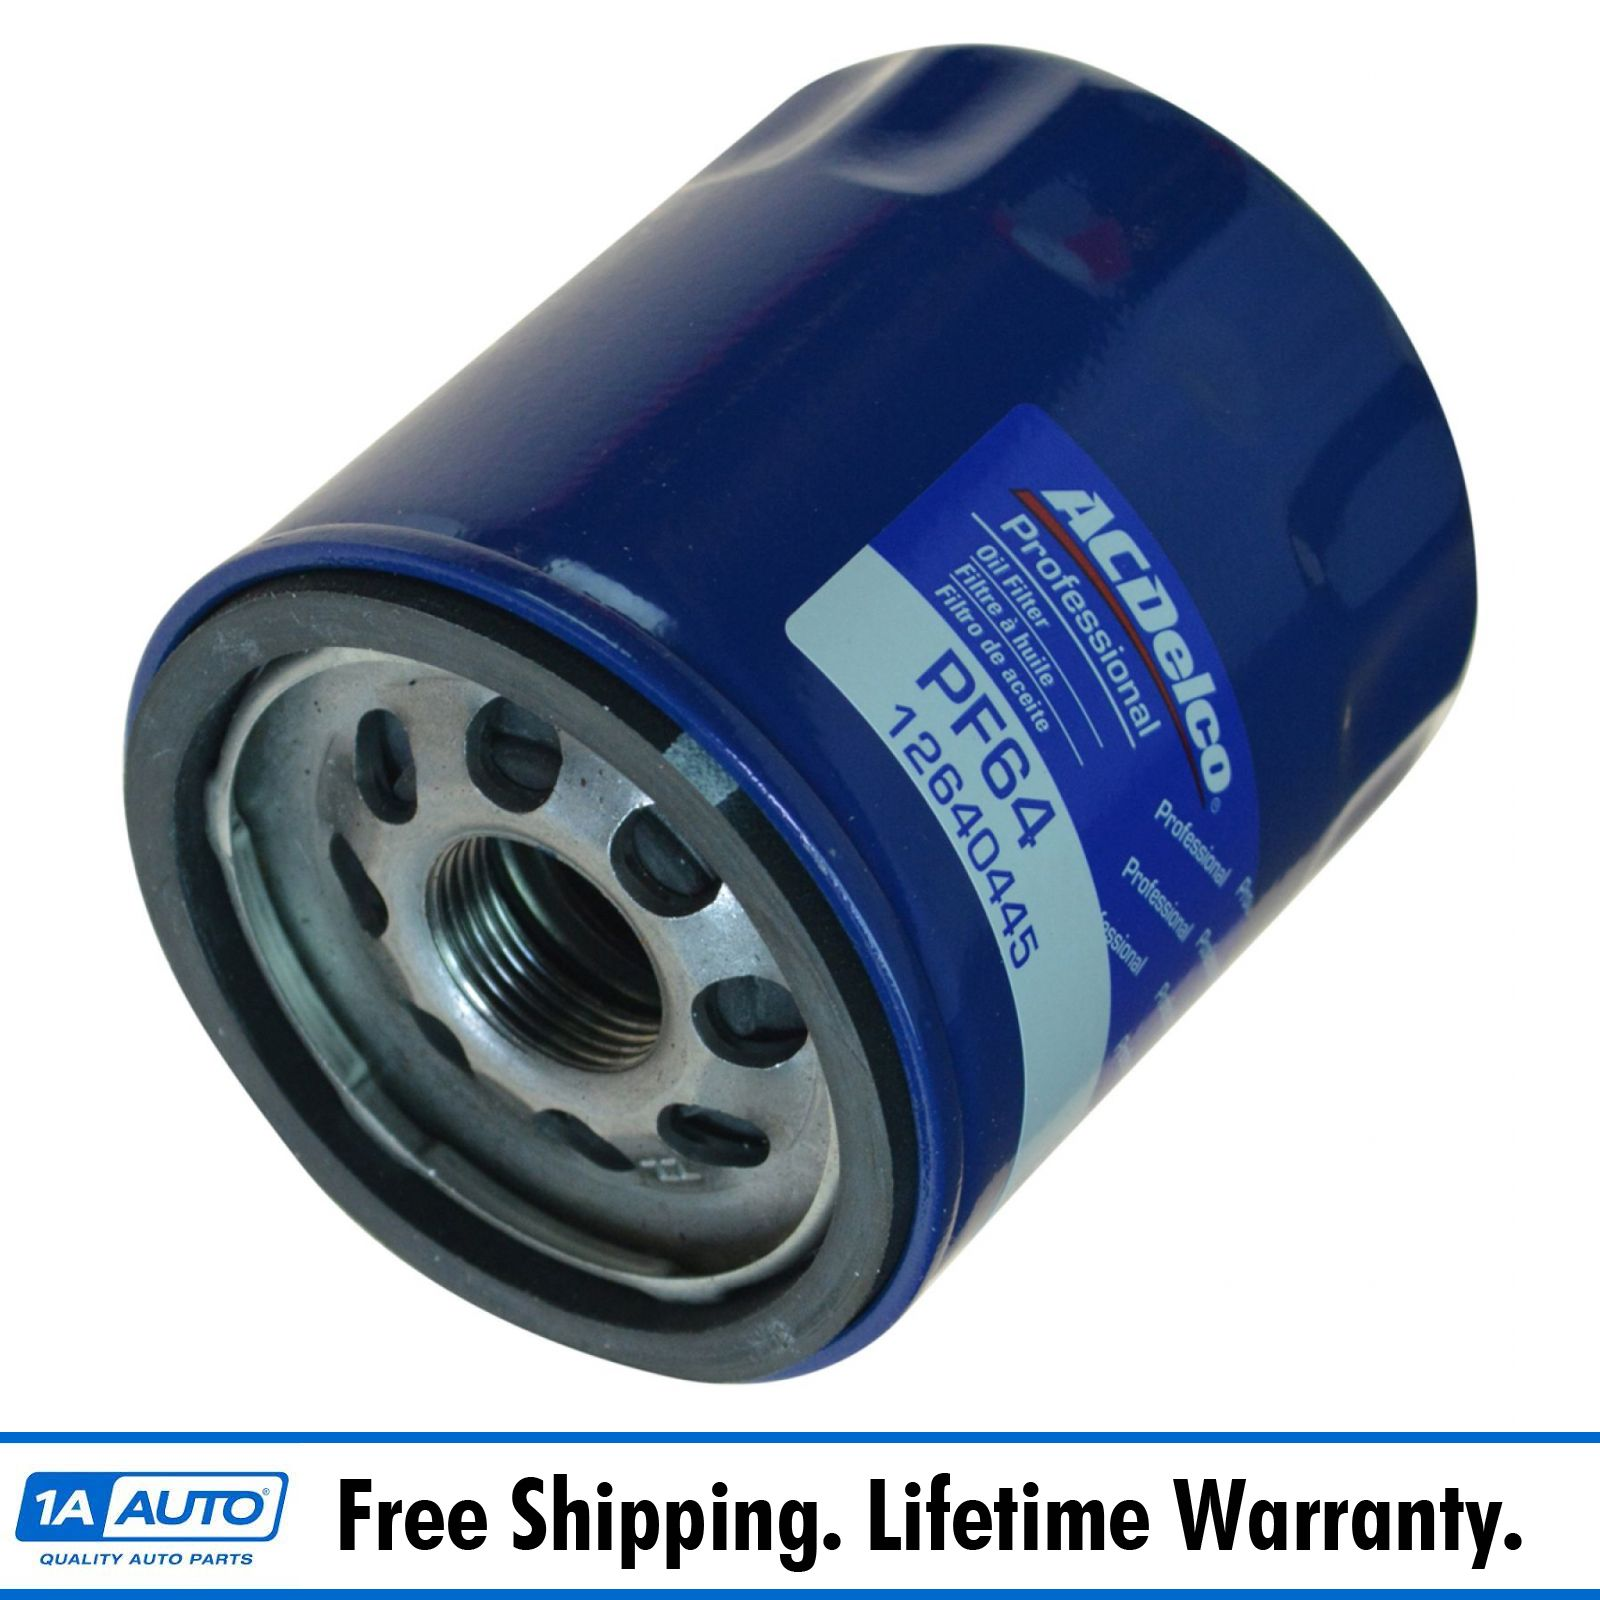 Ac Delco Pf64 Engine Oil Filter For Buick Cadillac Chevy